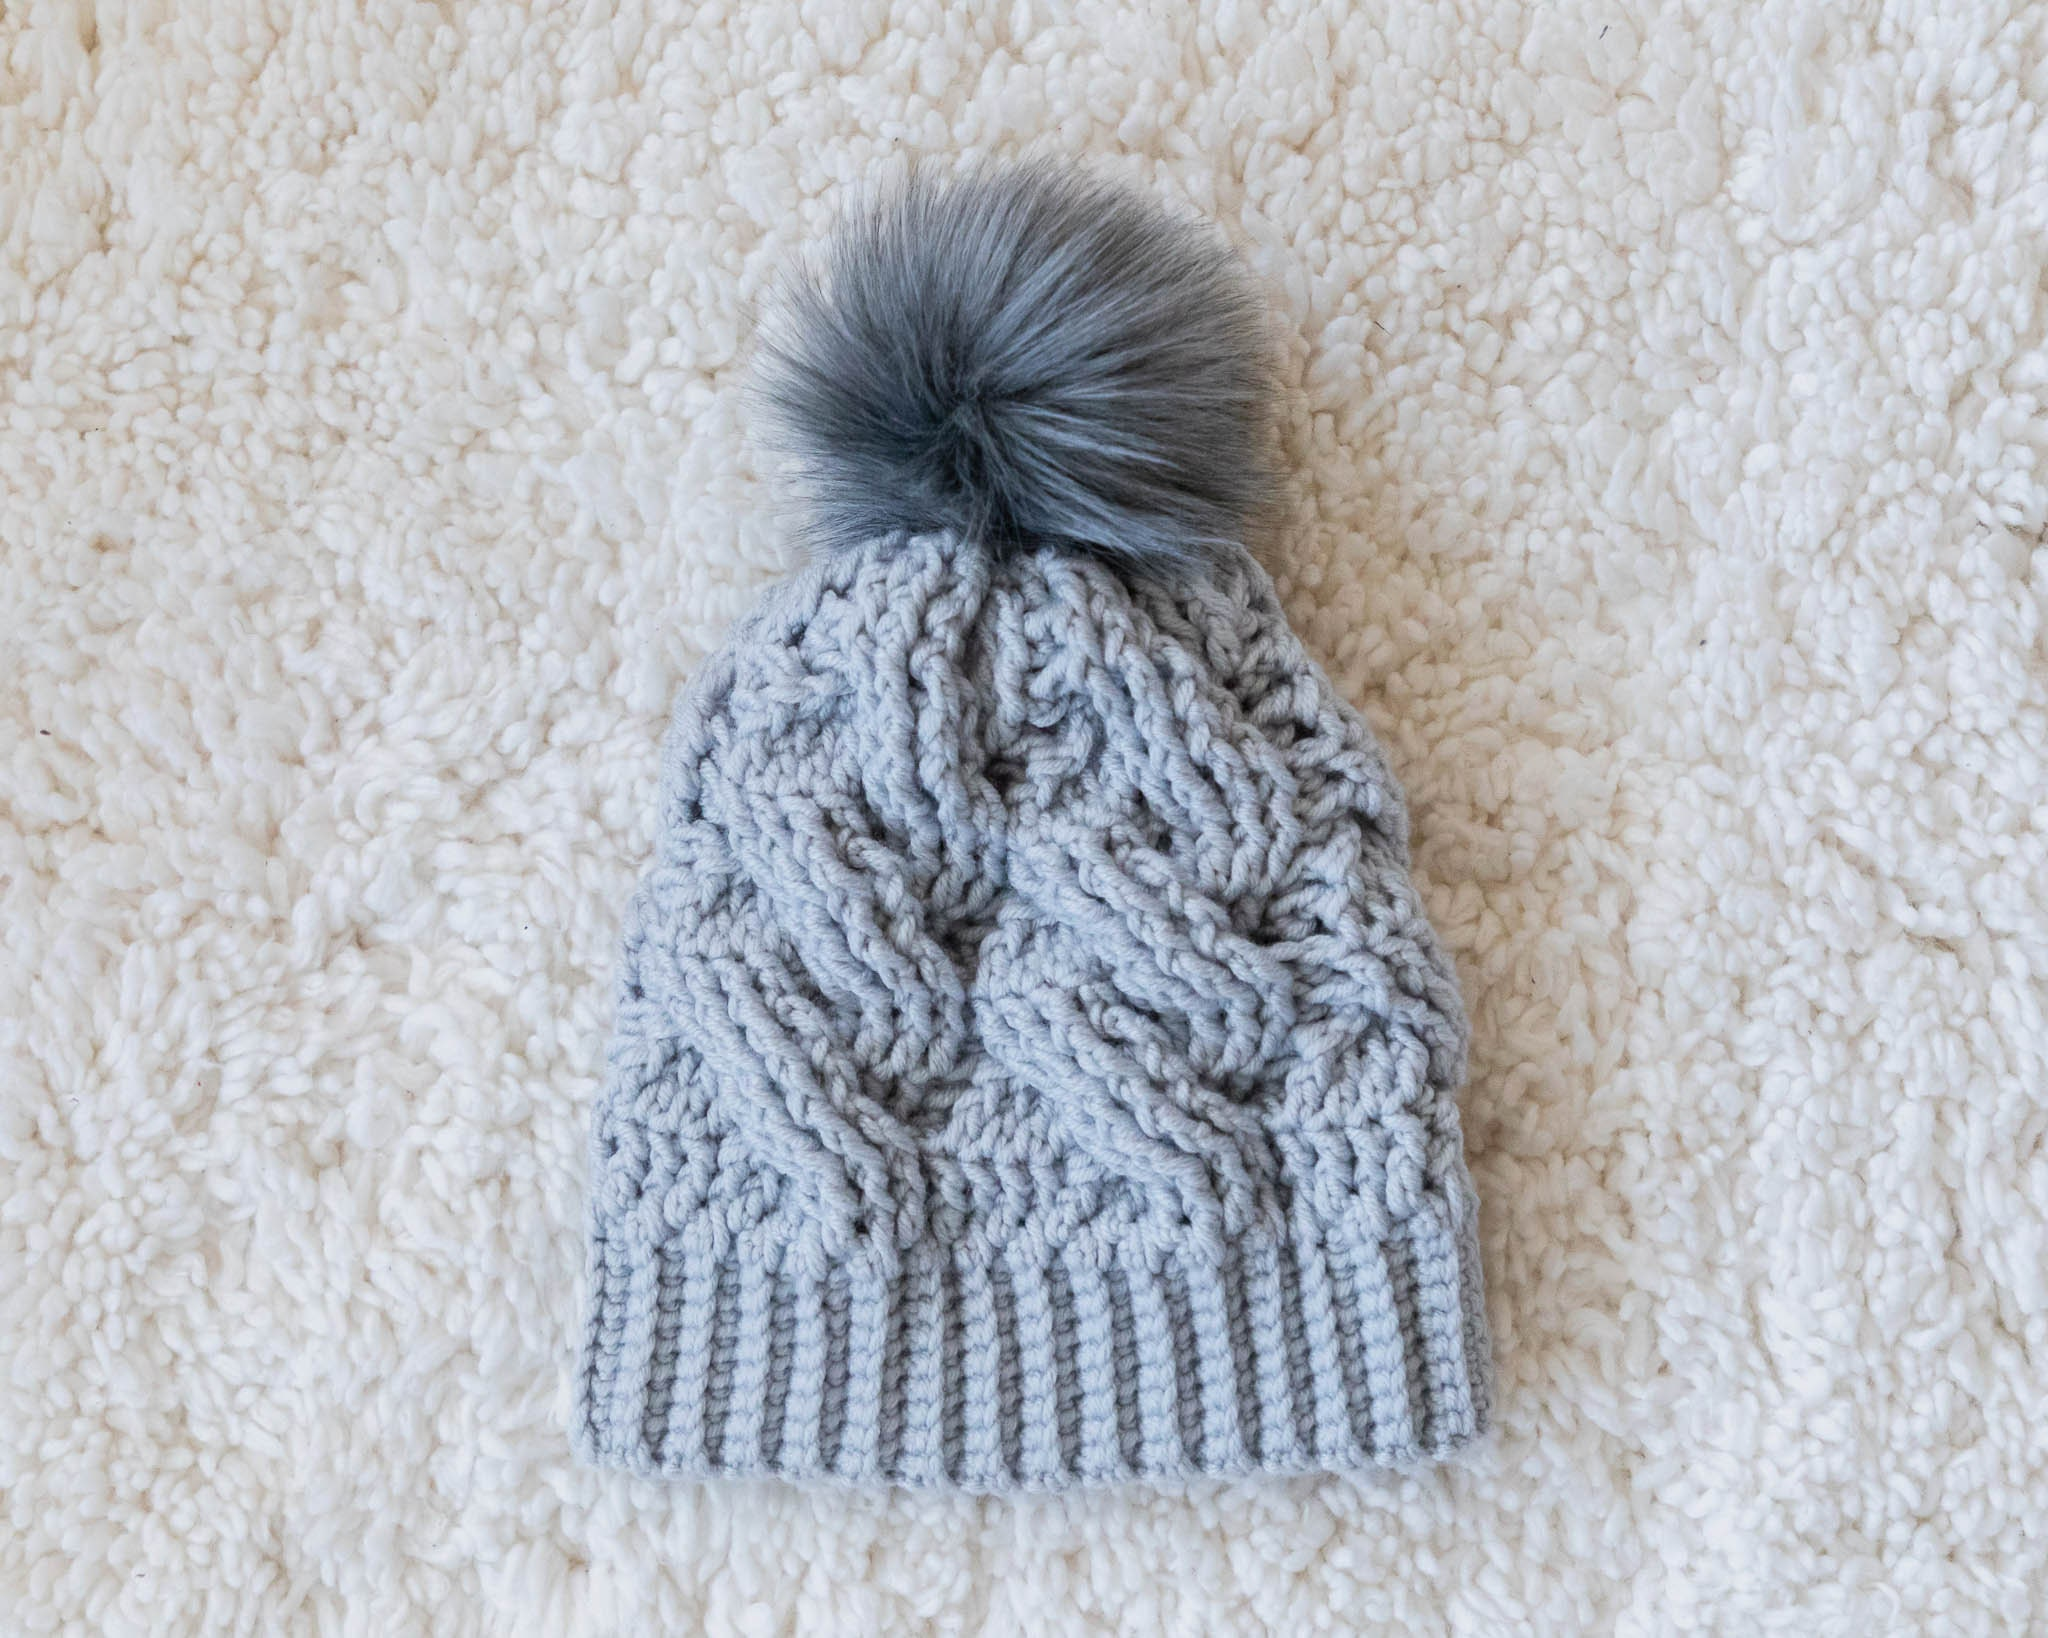 793e01453db READY TO SHIP! Brilliant Cables Beanie - Adult Size